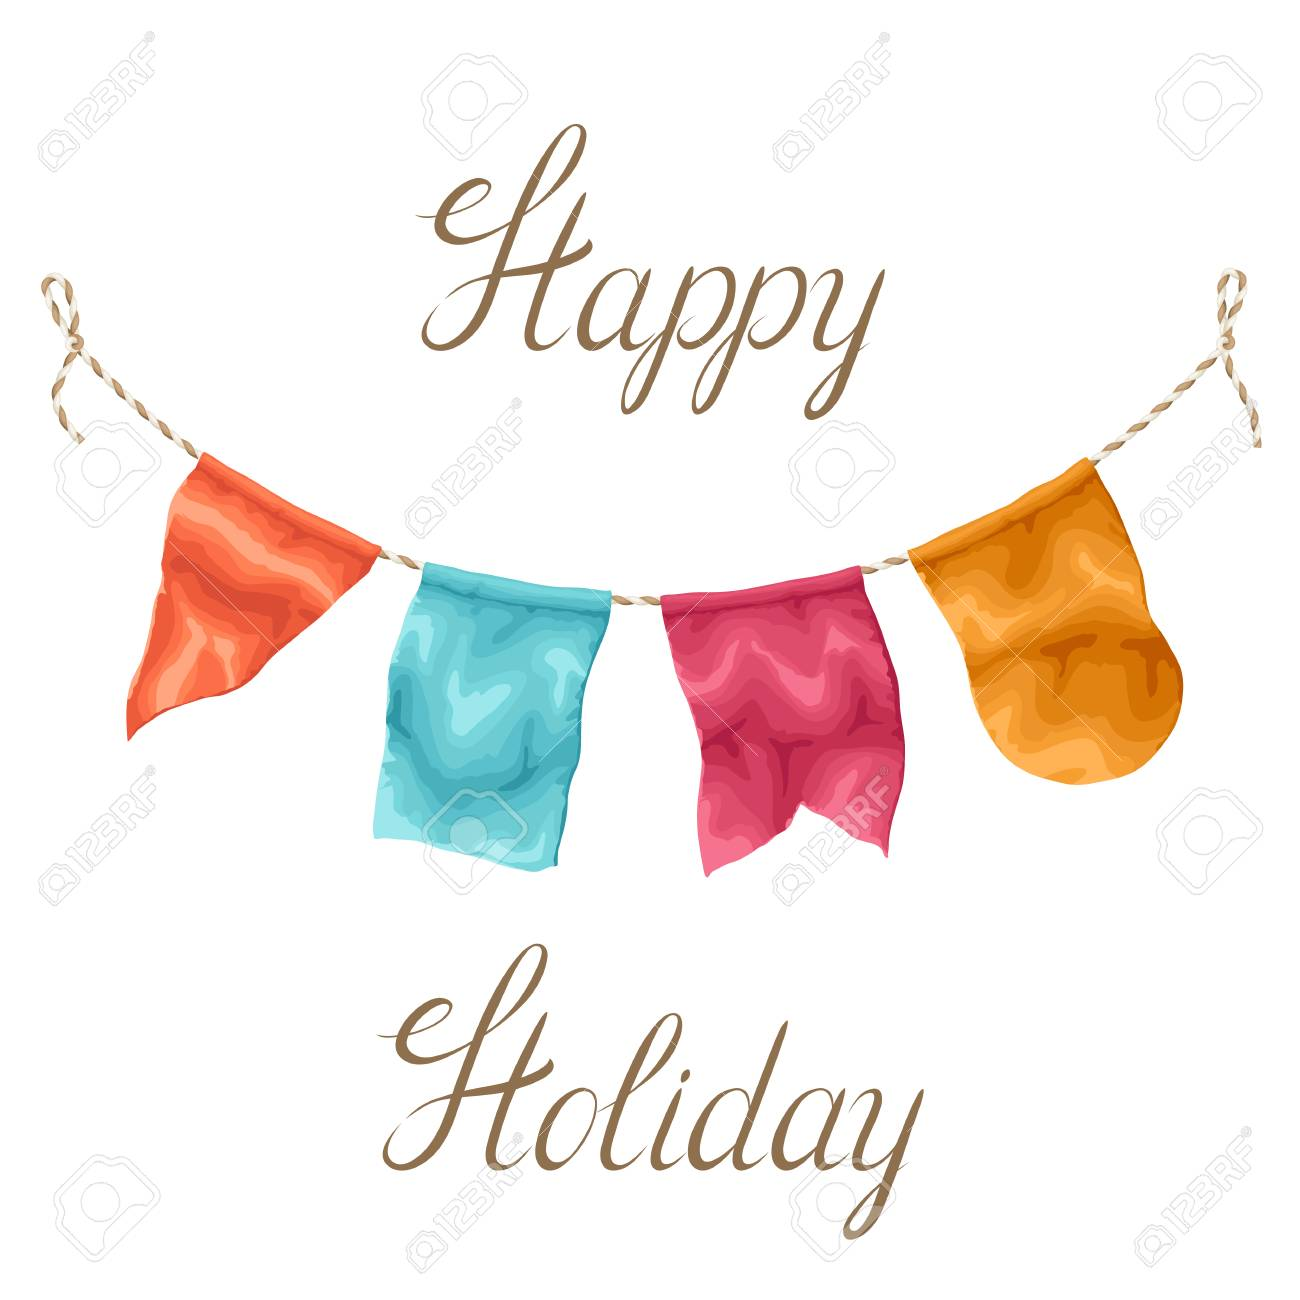 Happy Holiday Greeting Card Garland Of Flags Royalty Free Cliparts